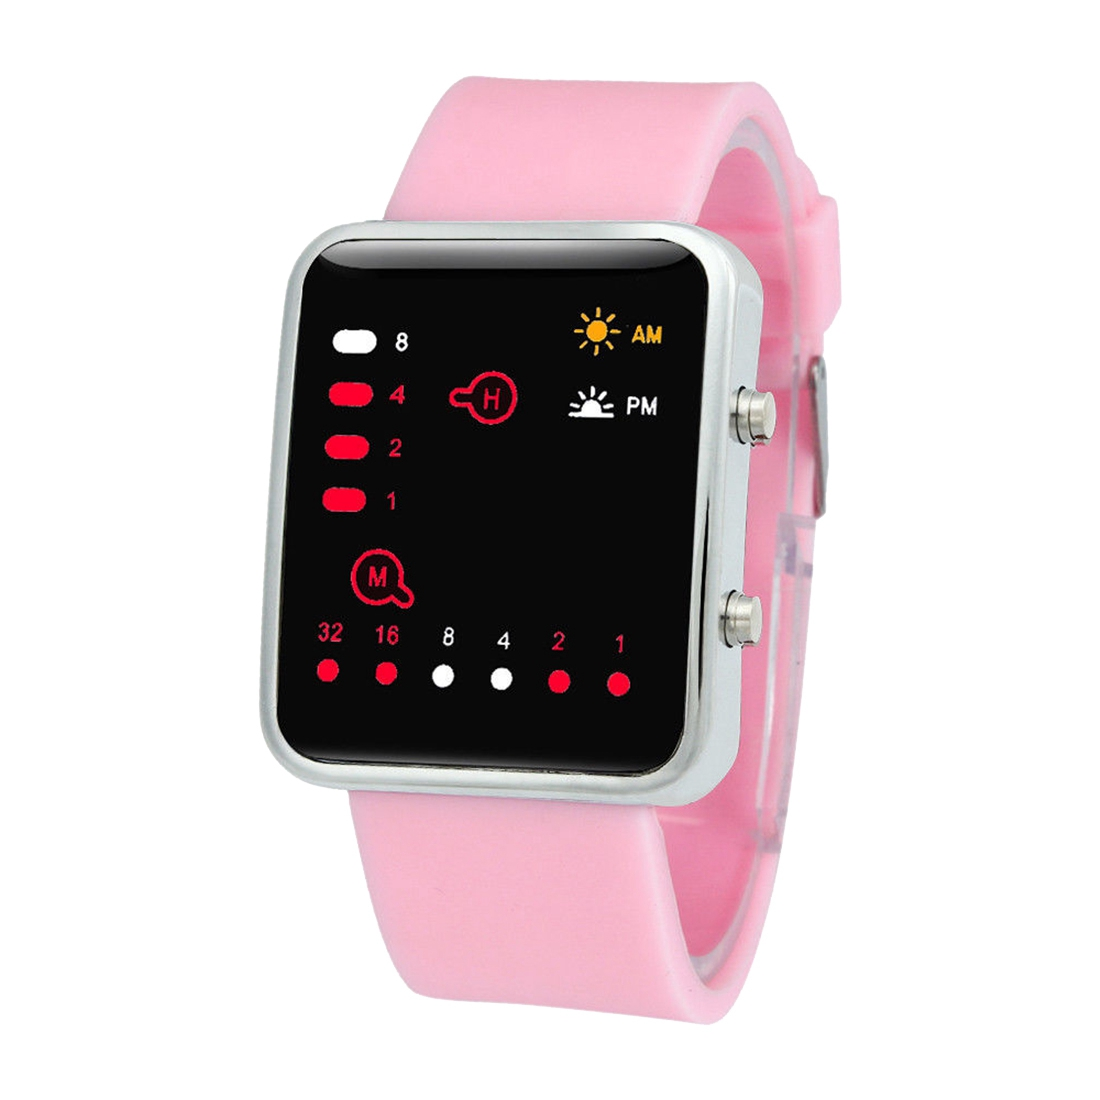 Unisex Silicone Sport Watch Red LED Digital Binary Wrist Sport Item Color:Pink